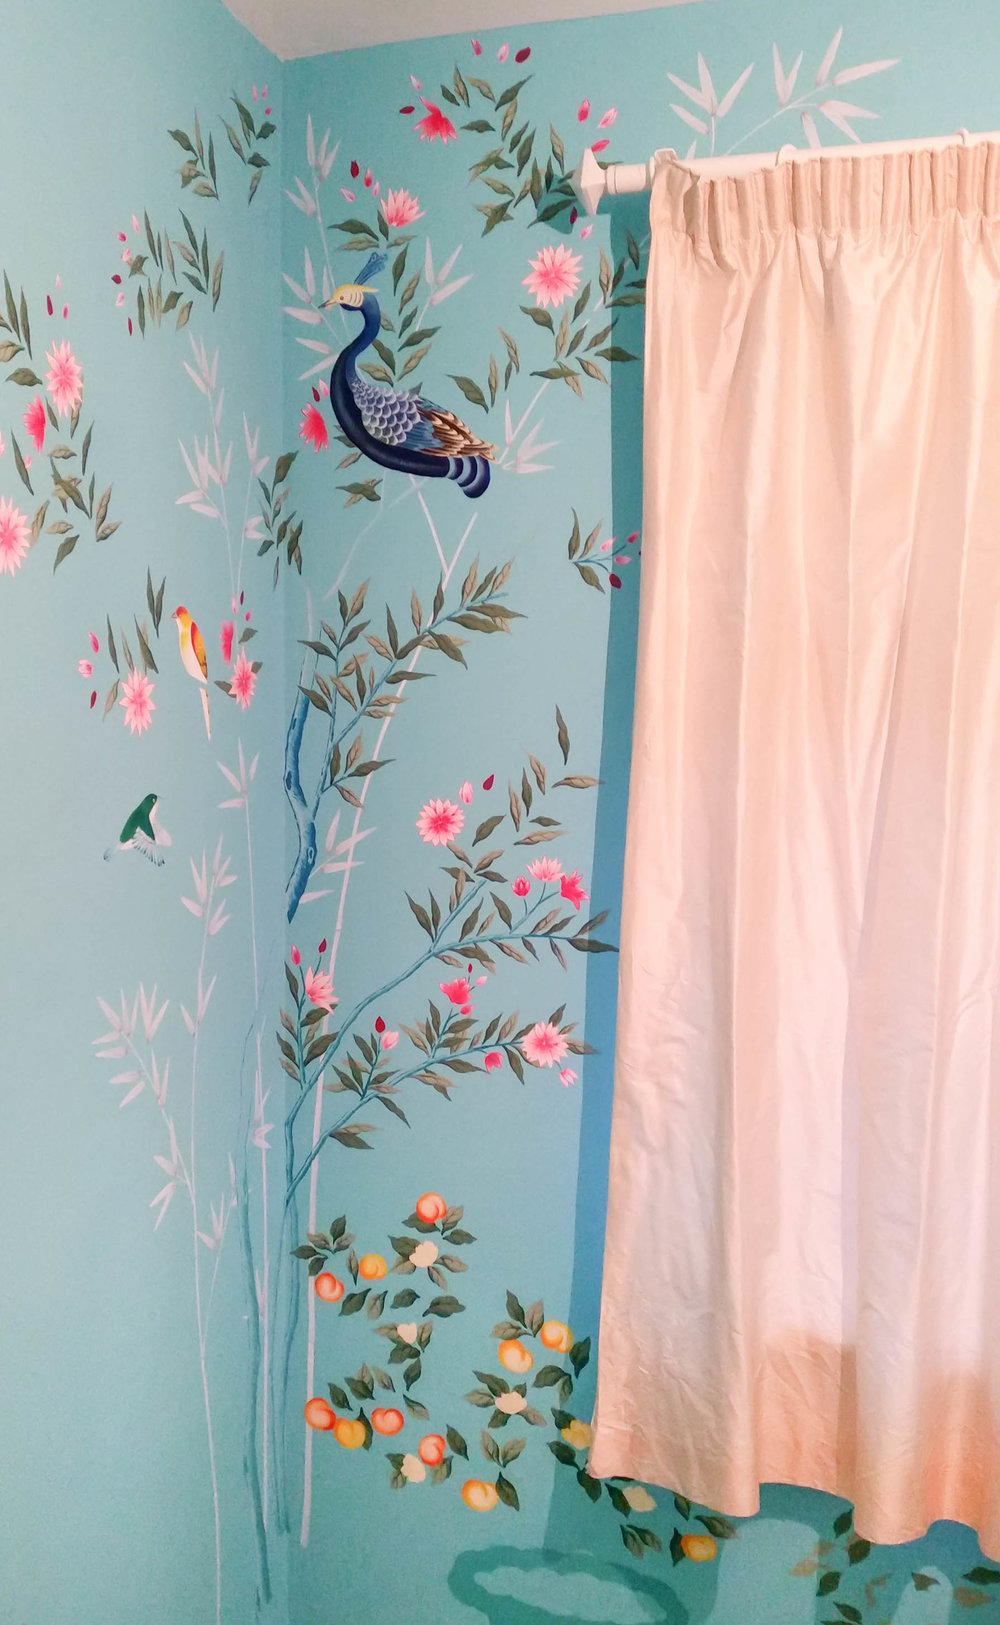 Diane Hill painting leaves and peacock chinoiserie design